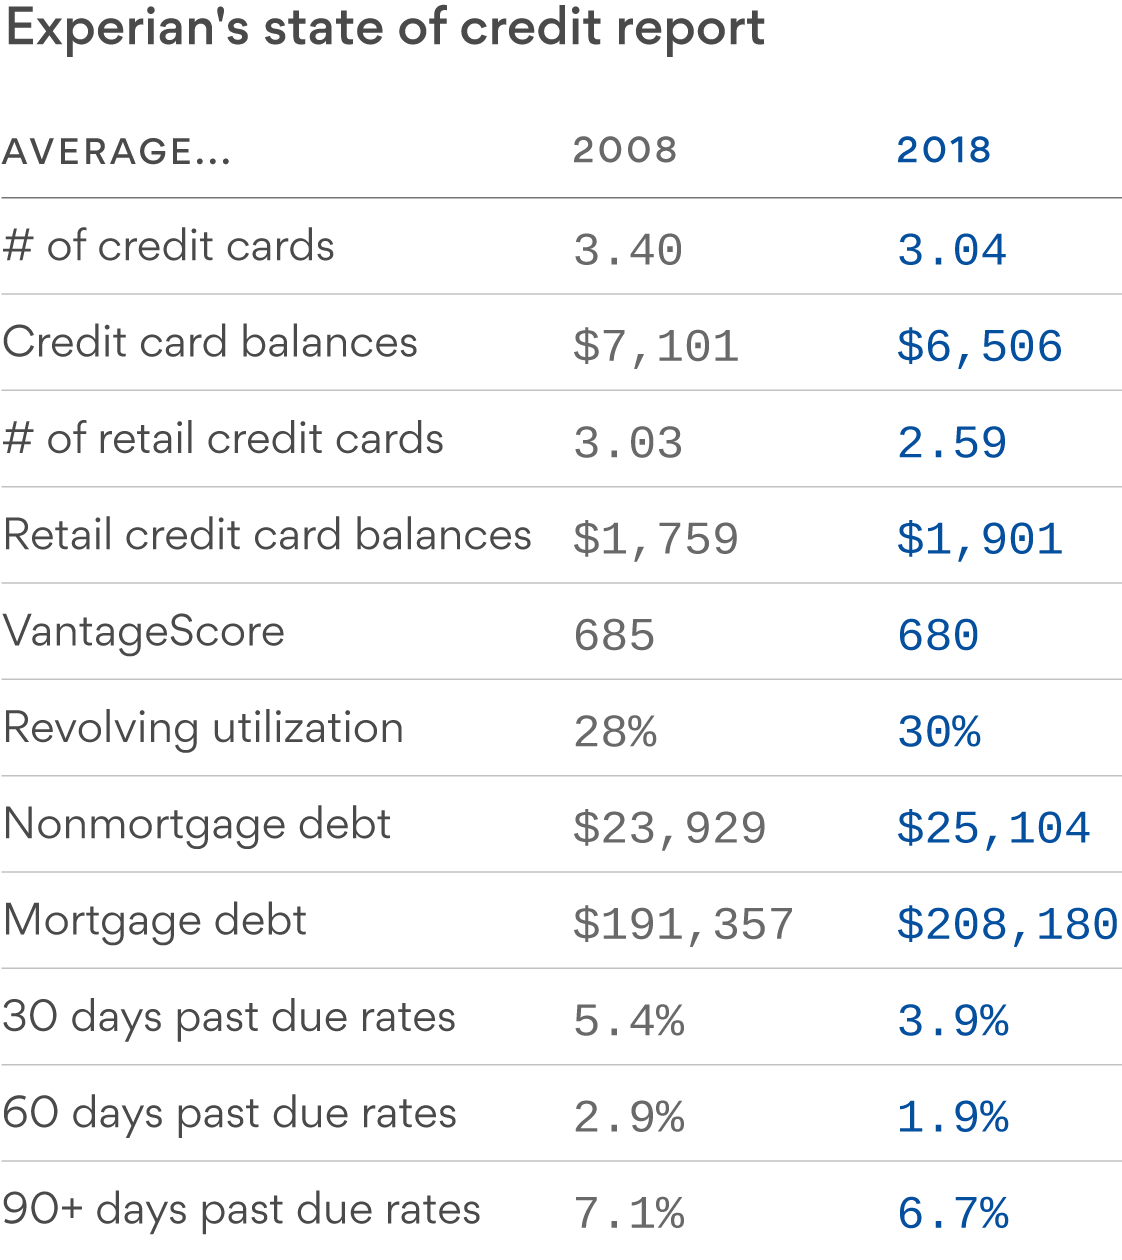 The elderly saw the saw the most significant drop in average credit scores from 2008 to 2018